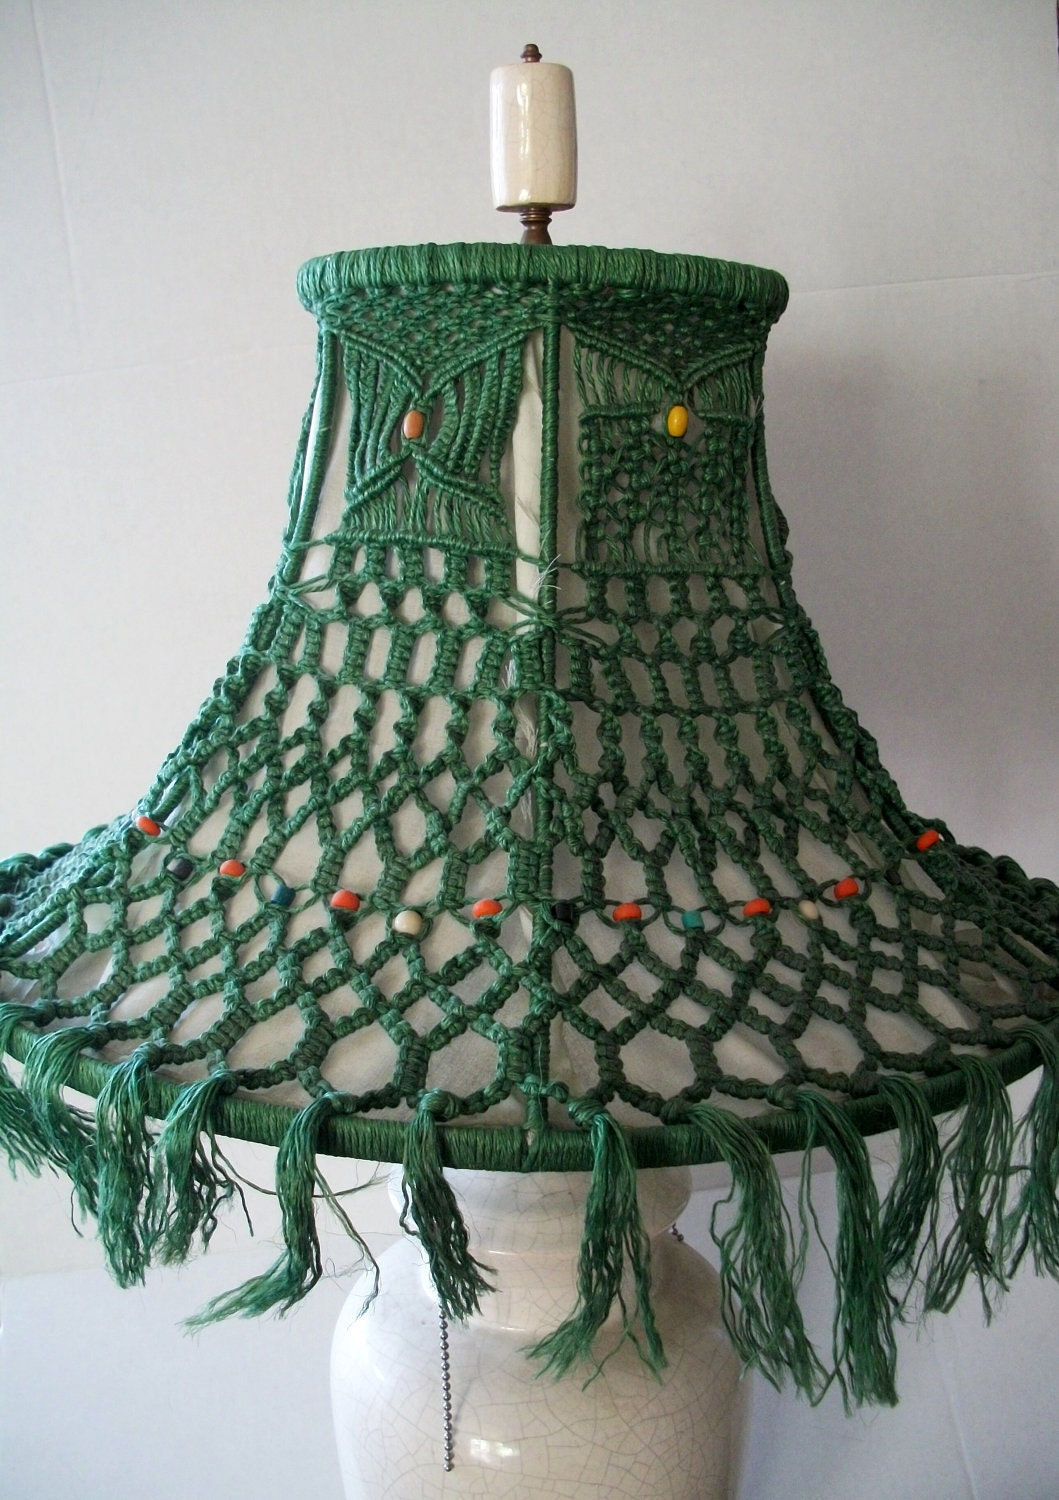 vintage lamp shade macrame green 1960s hippie retro boho. Black Bedroom Furniture Sets. Home Design Ideas